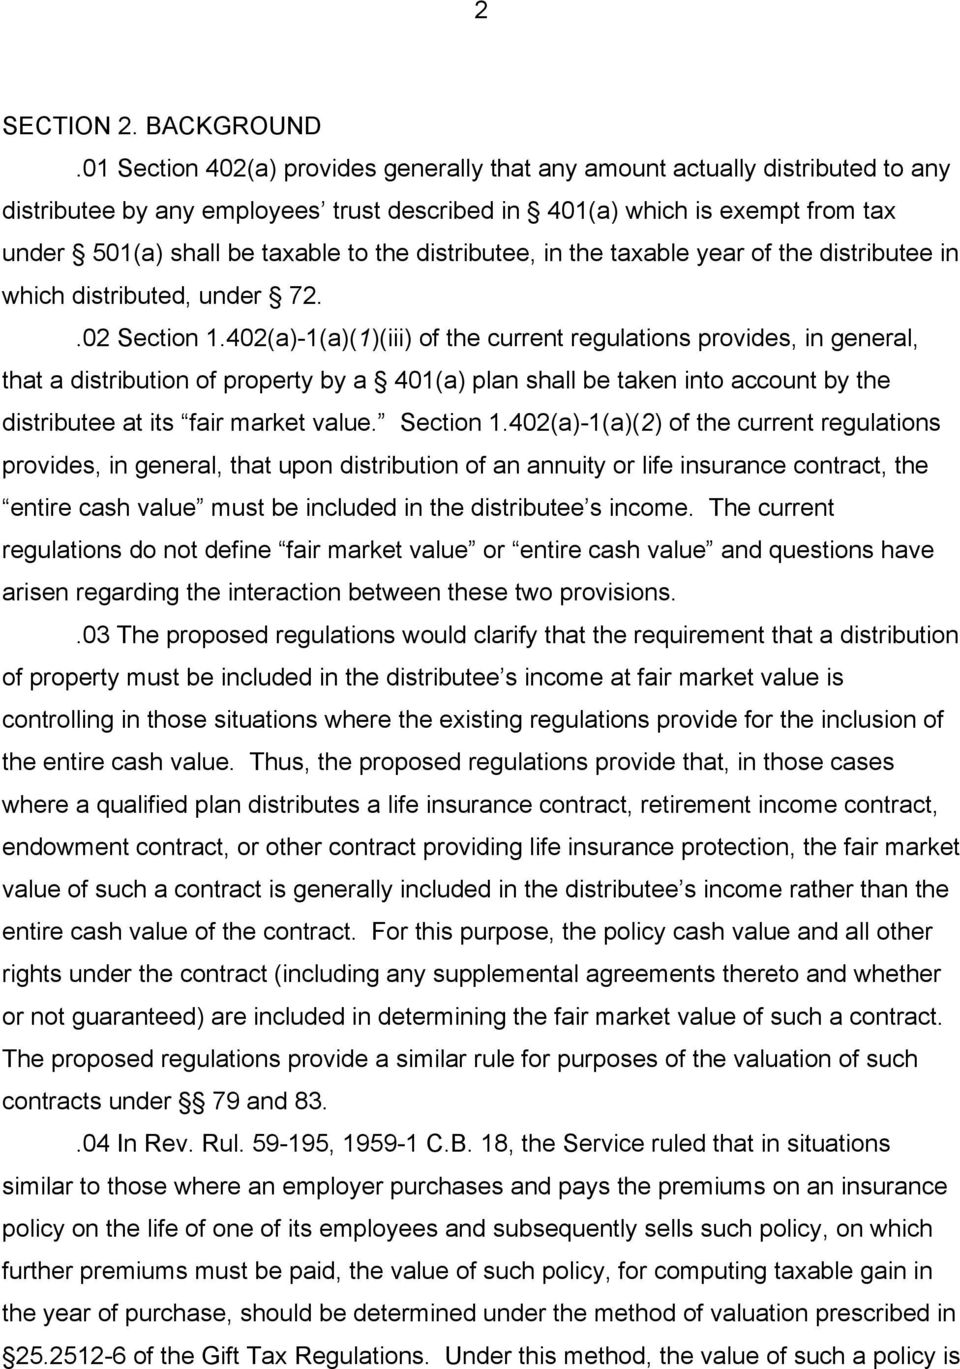 distributee, in the taxable year of the distributee in which distributed, under 72..02 Section 1.